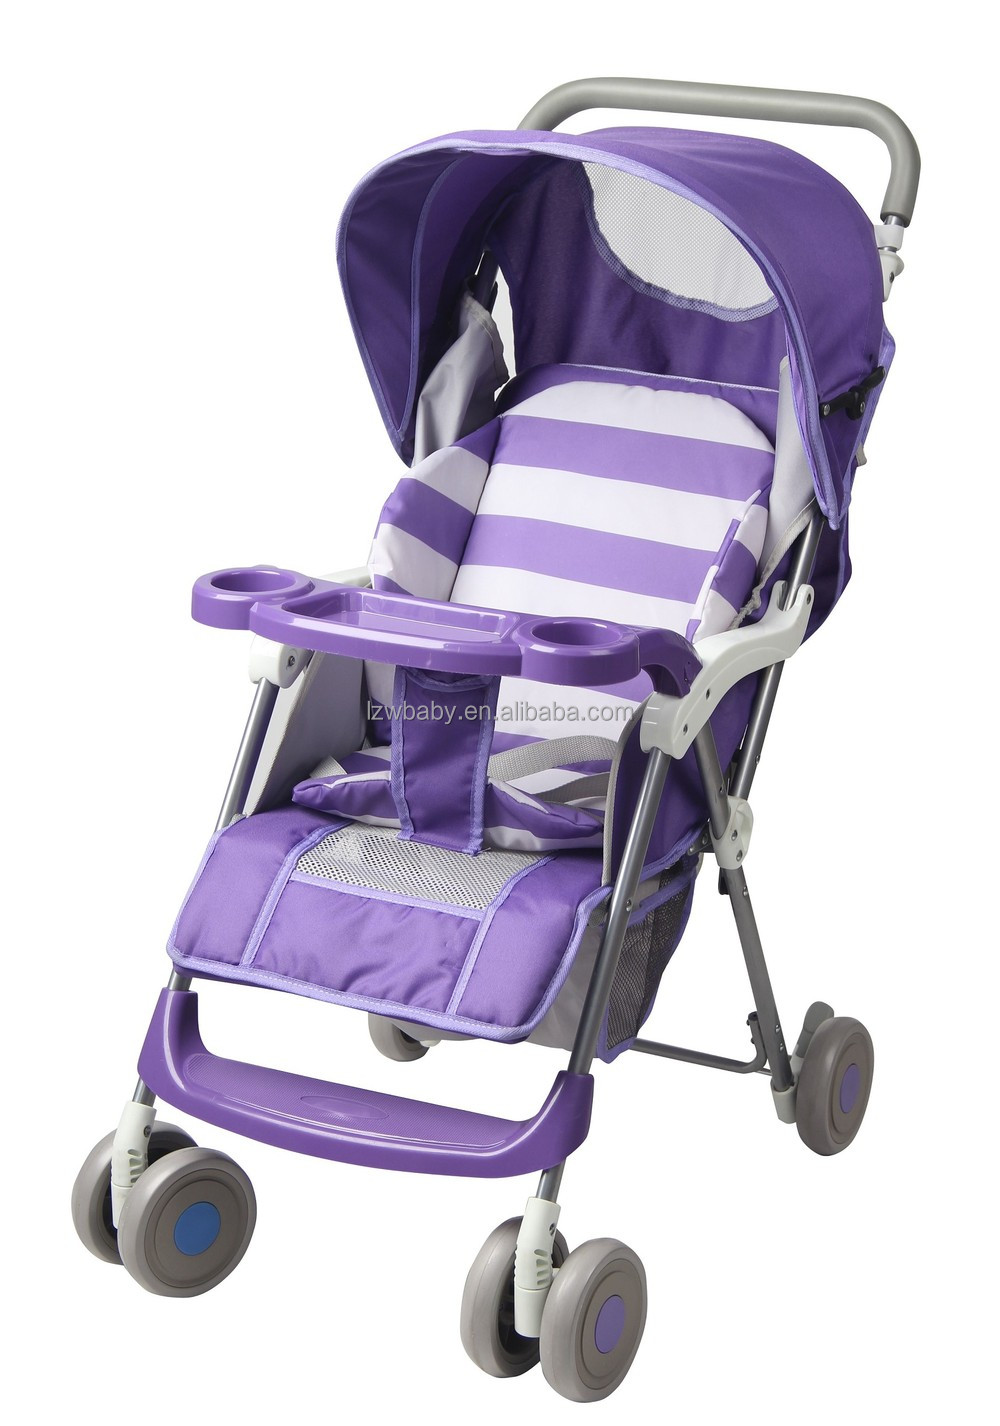 Alibaba manufacturer directory suppliers manufacturers Motorized baby stroller